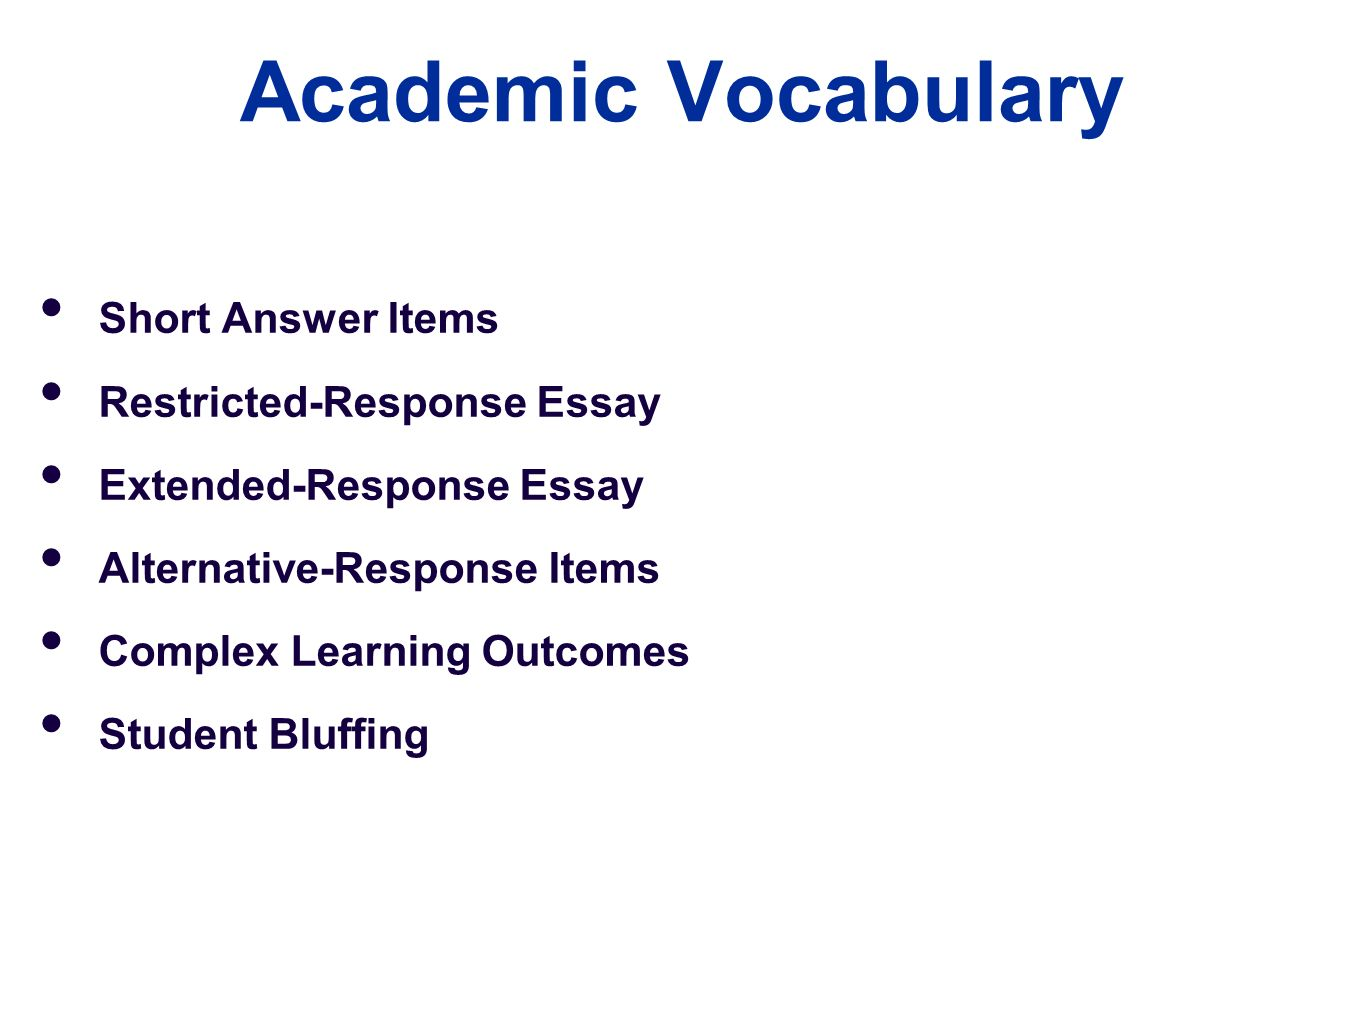 essay restricted type questions Free types of restricted response essay question article - k - types of restricted response essay question information at ezineseekercom.